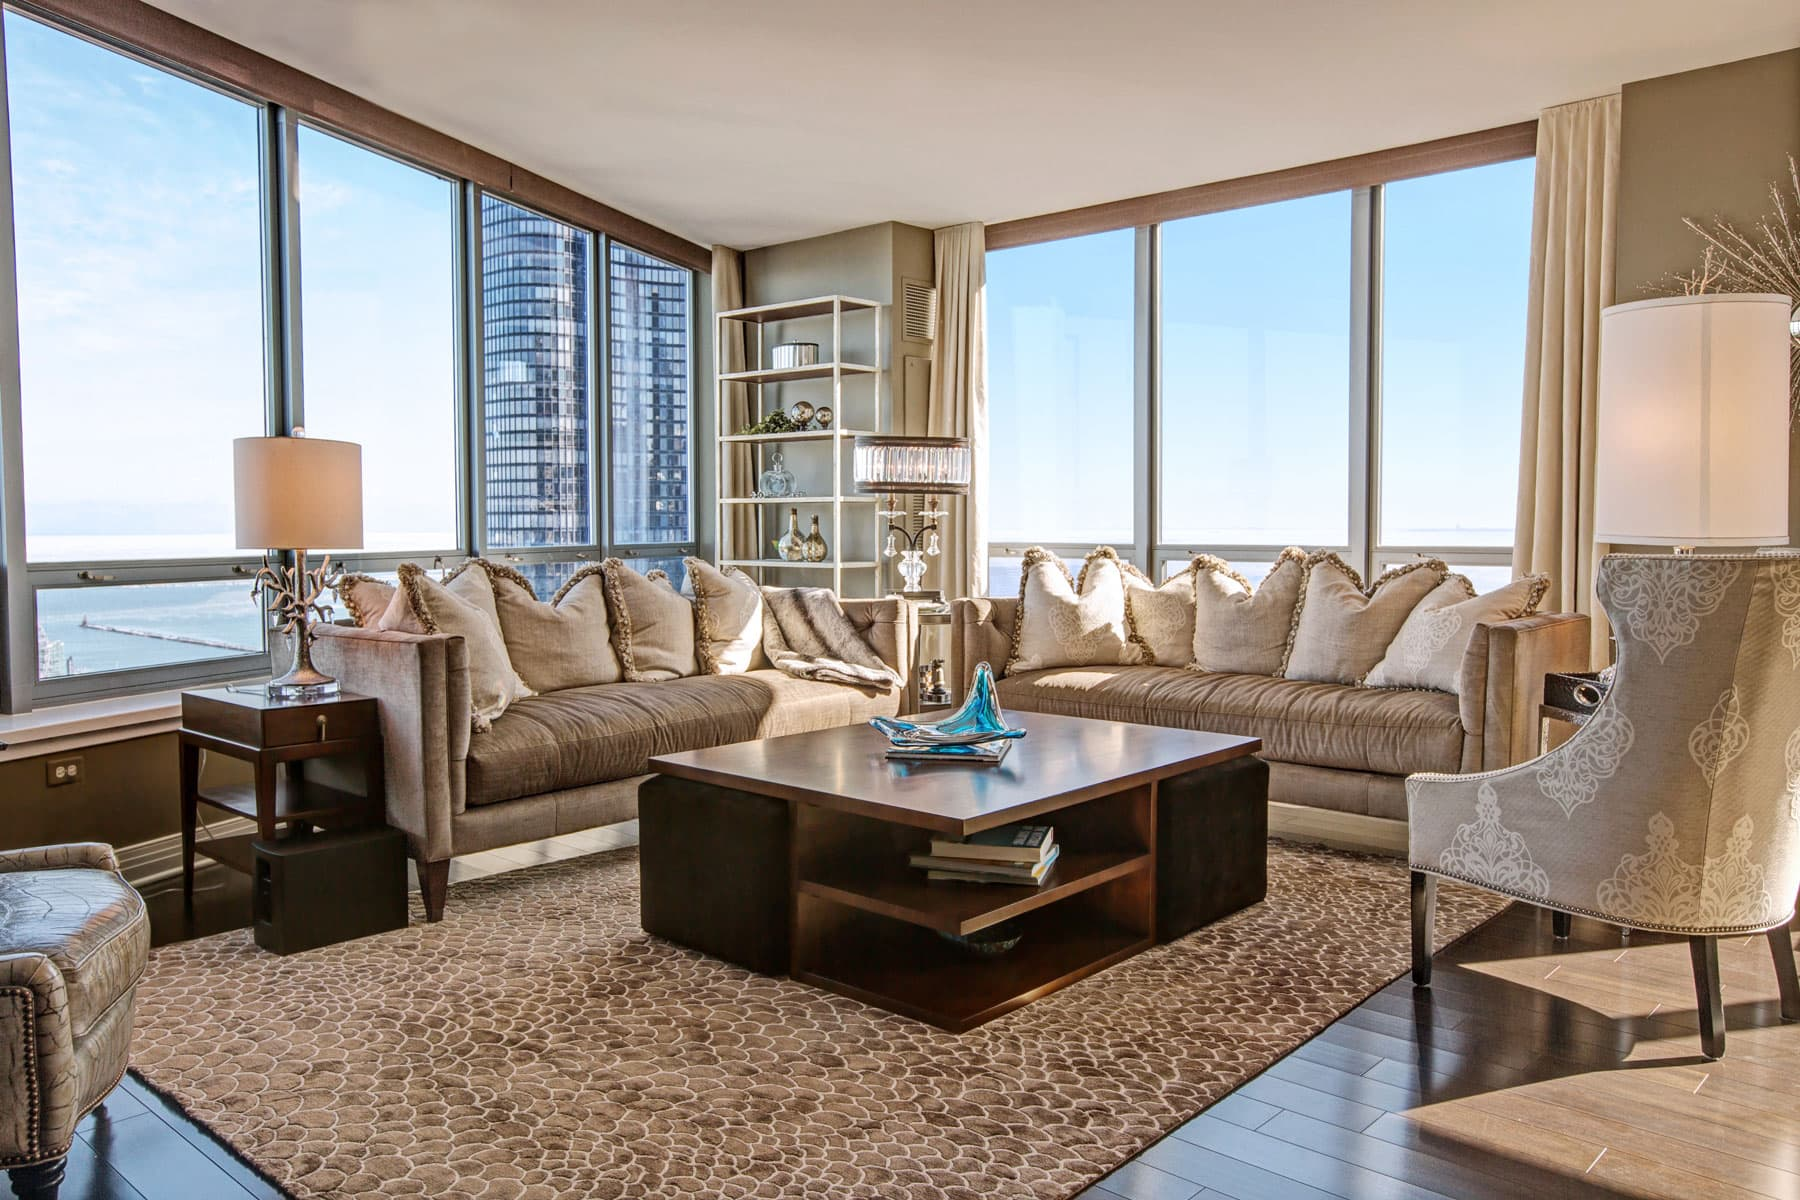 Luxury chicago condo interior design luxury interior for Condo interior design